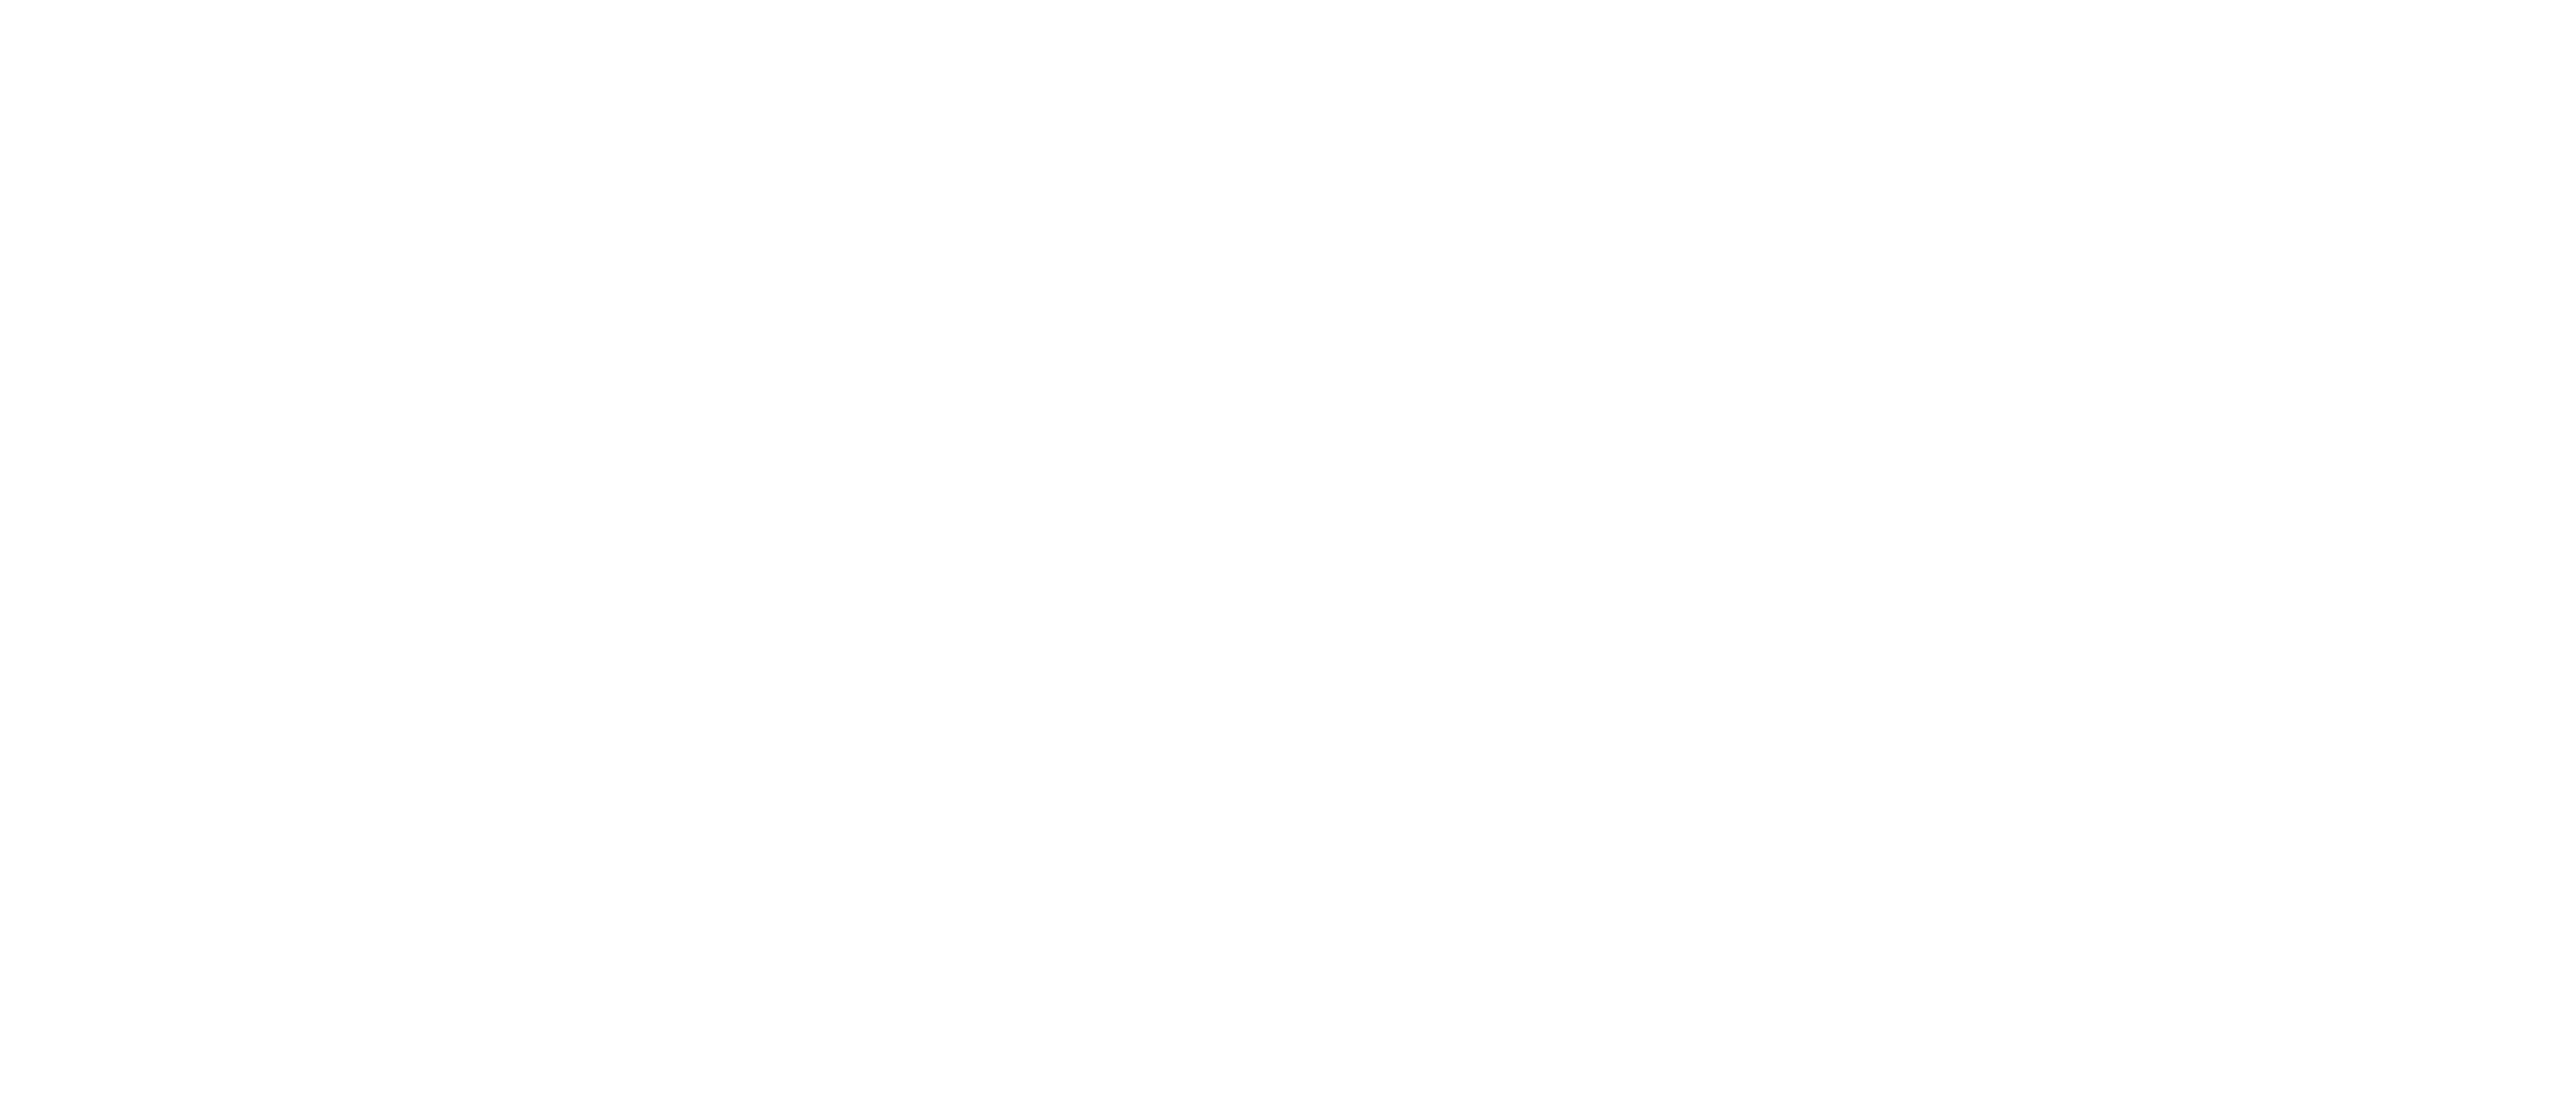 Star background image